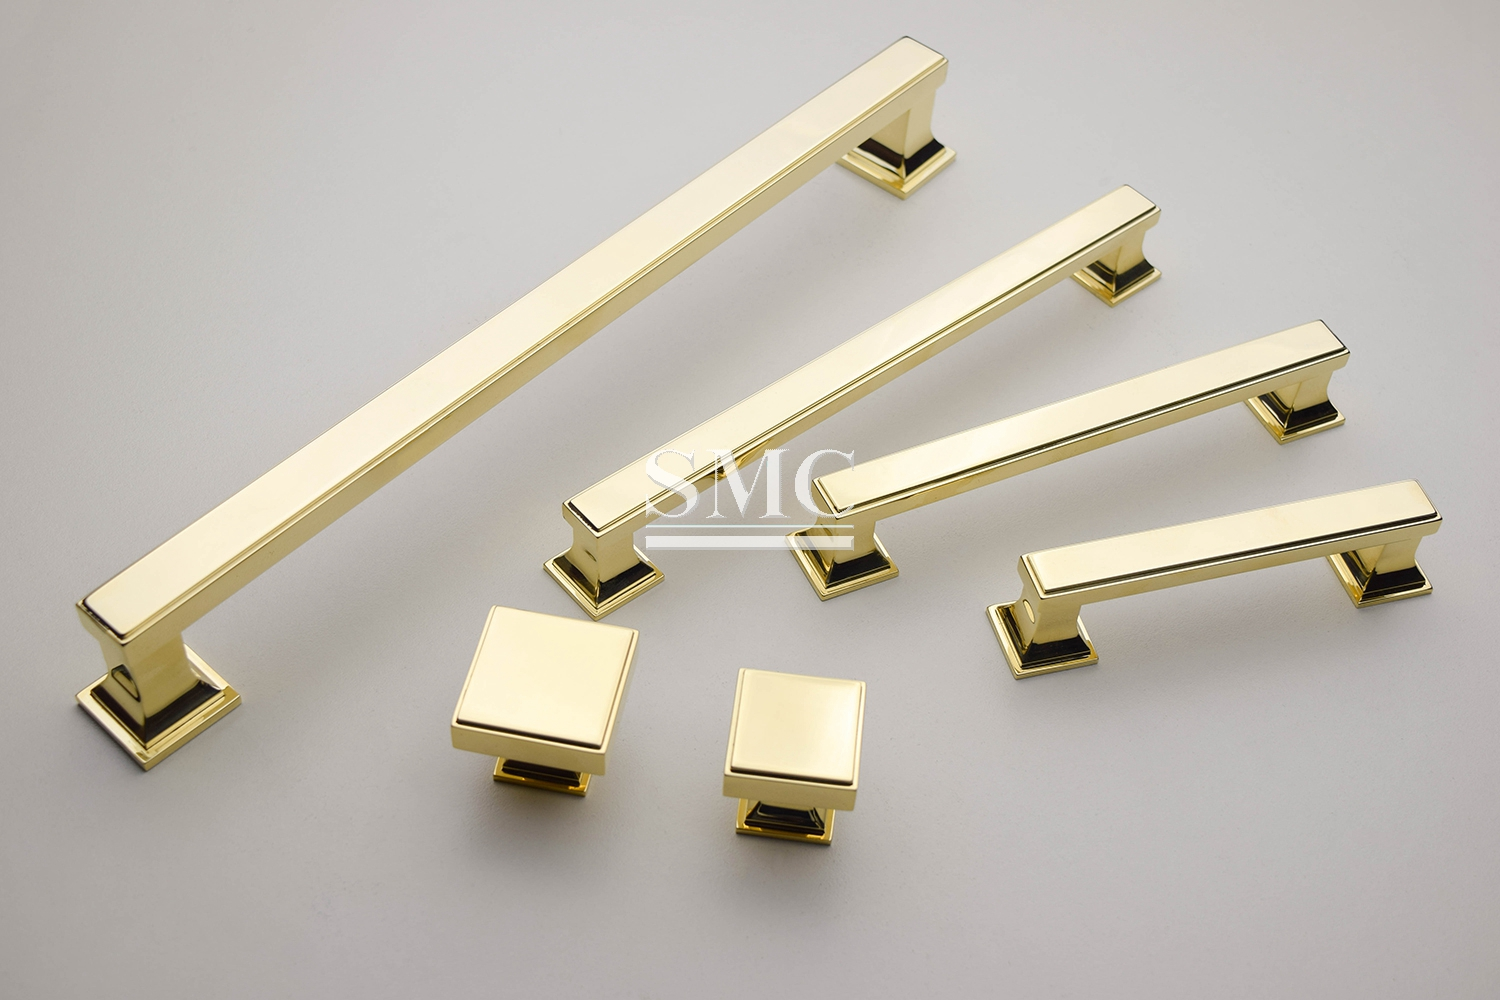 Why your builder chose solid brass hardware?